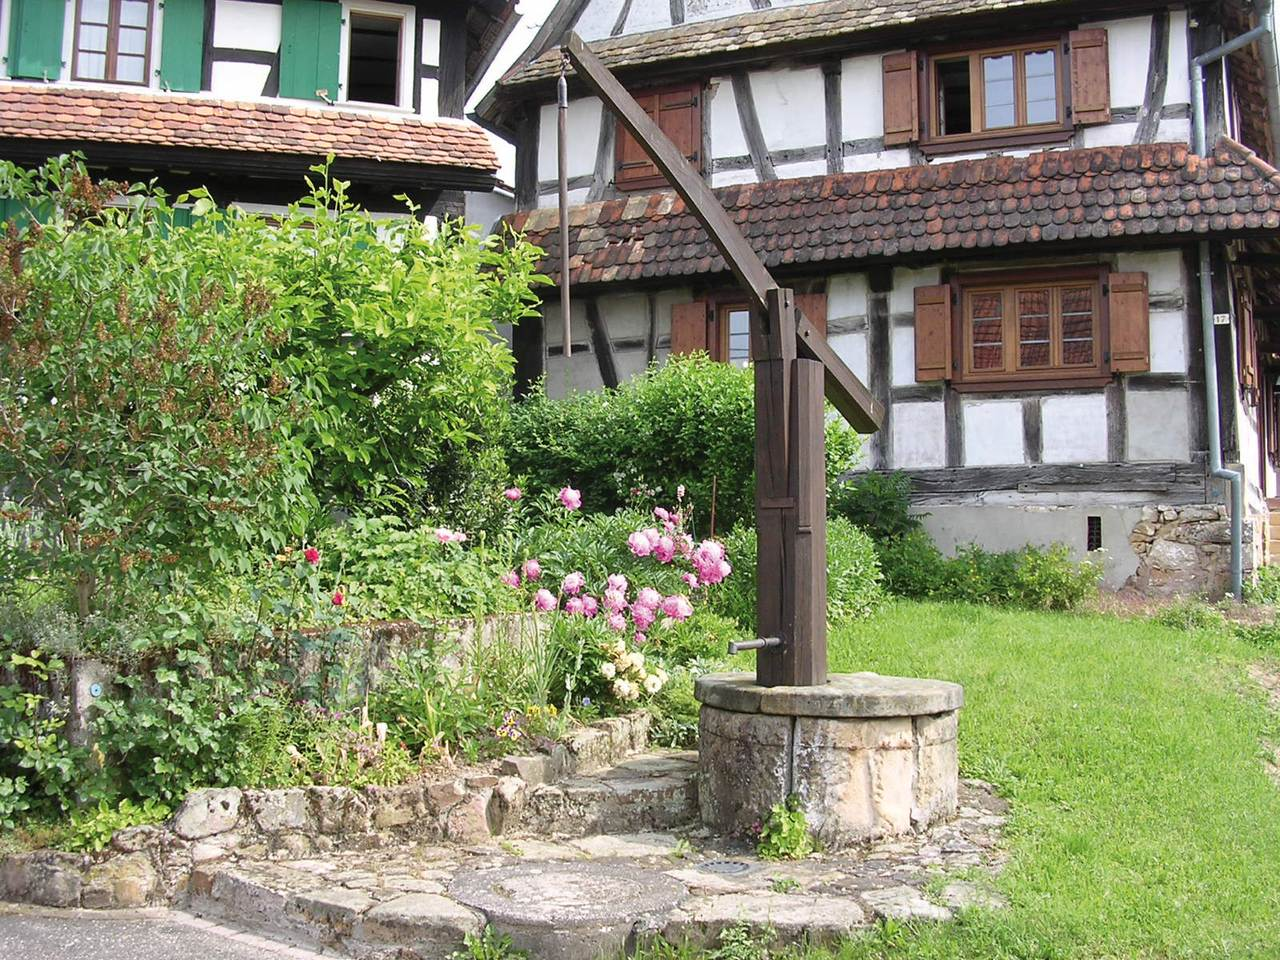 Hunspach bas rhin les plus beaux villages de france - Pro inter haguenau ...